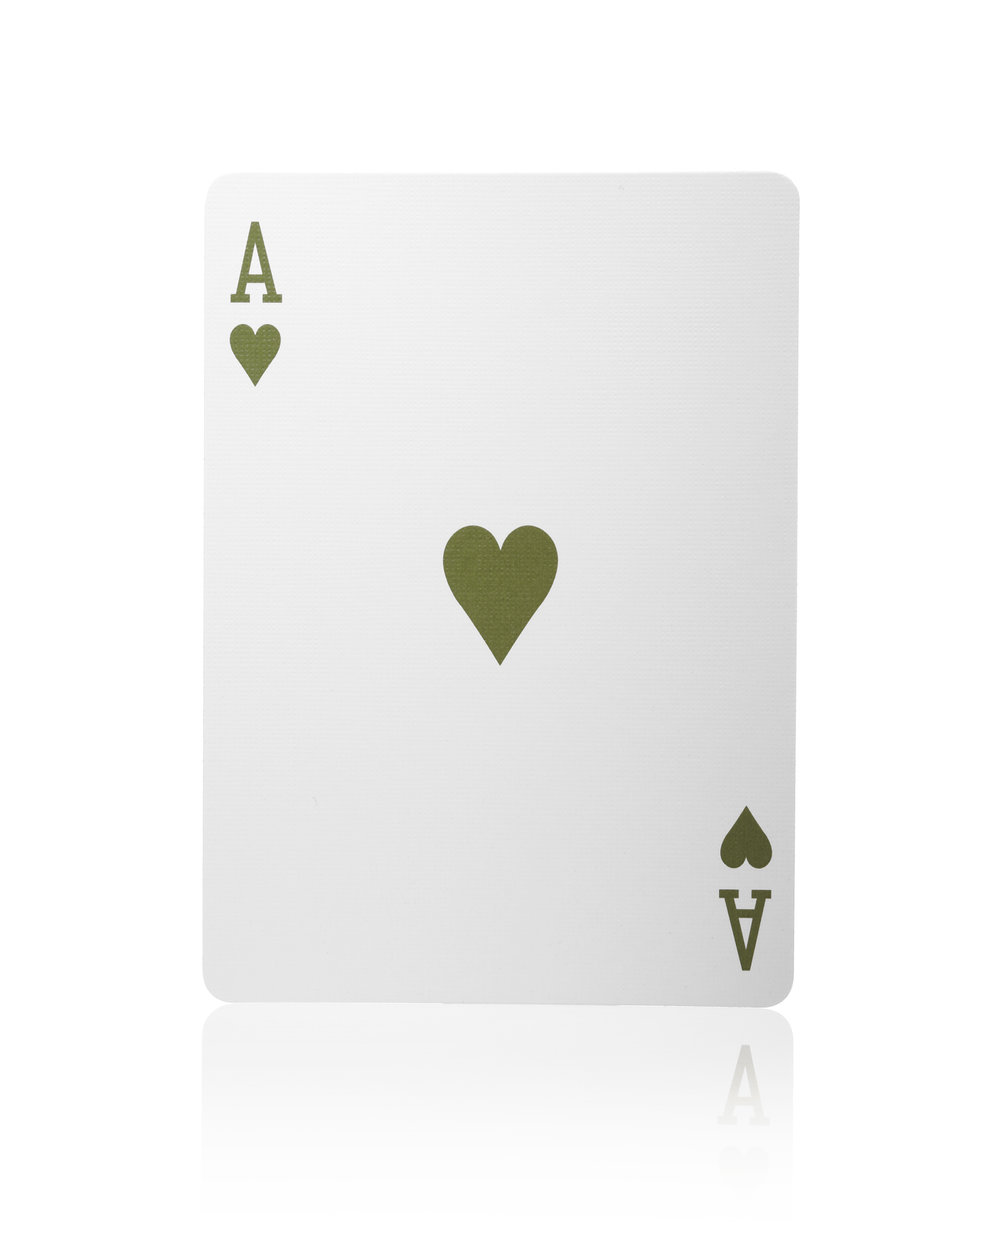 110330-PlayingCards-PlayingCards-016 copy.jpg